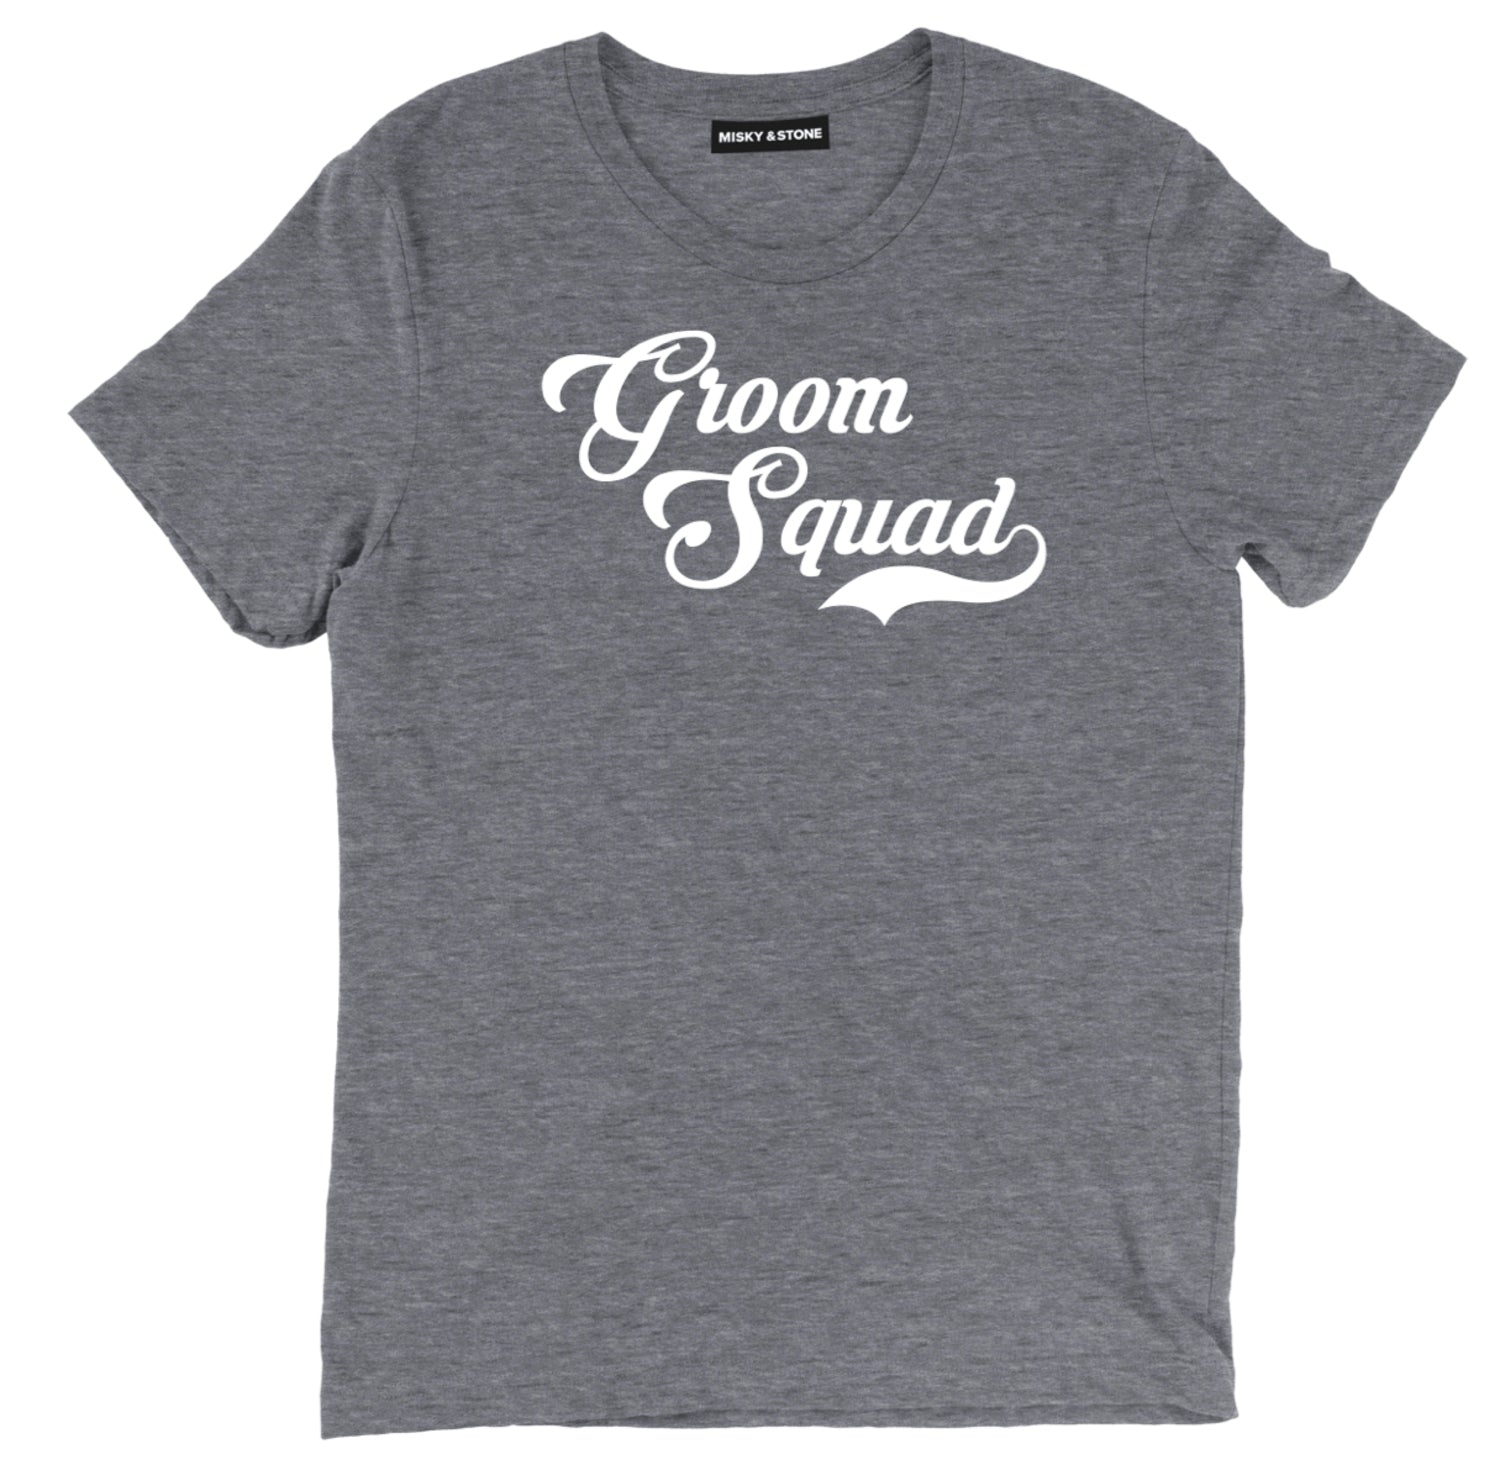 Groom Squad Tee Shirt